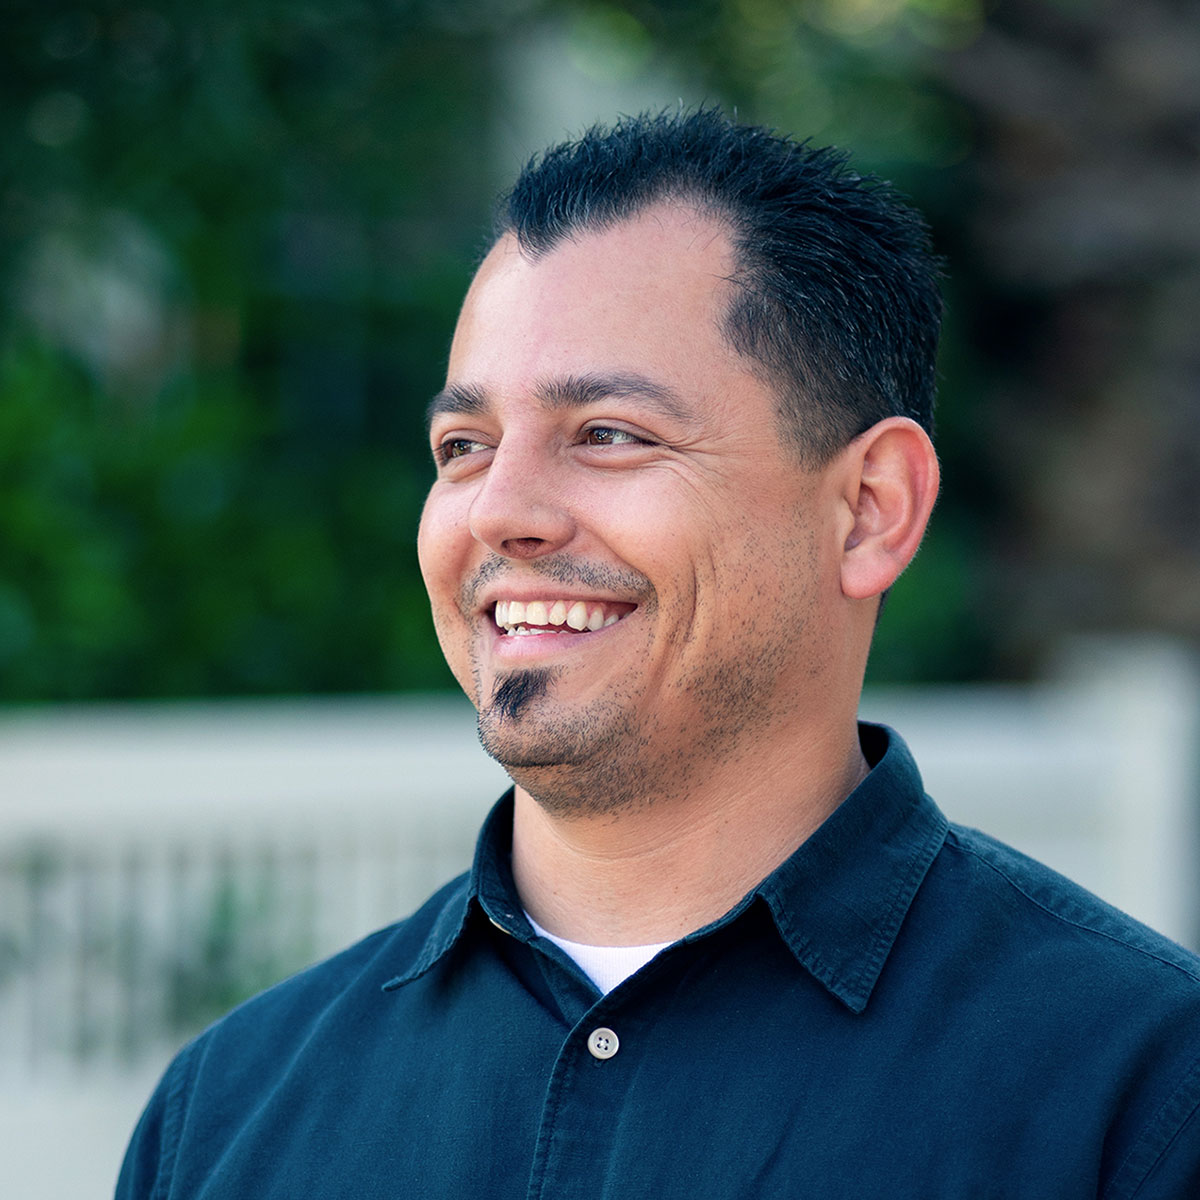 Max Rendon is a job captain for Los Angeles architecture firm Tim Barber Ltd.